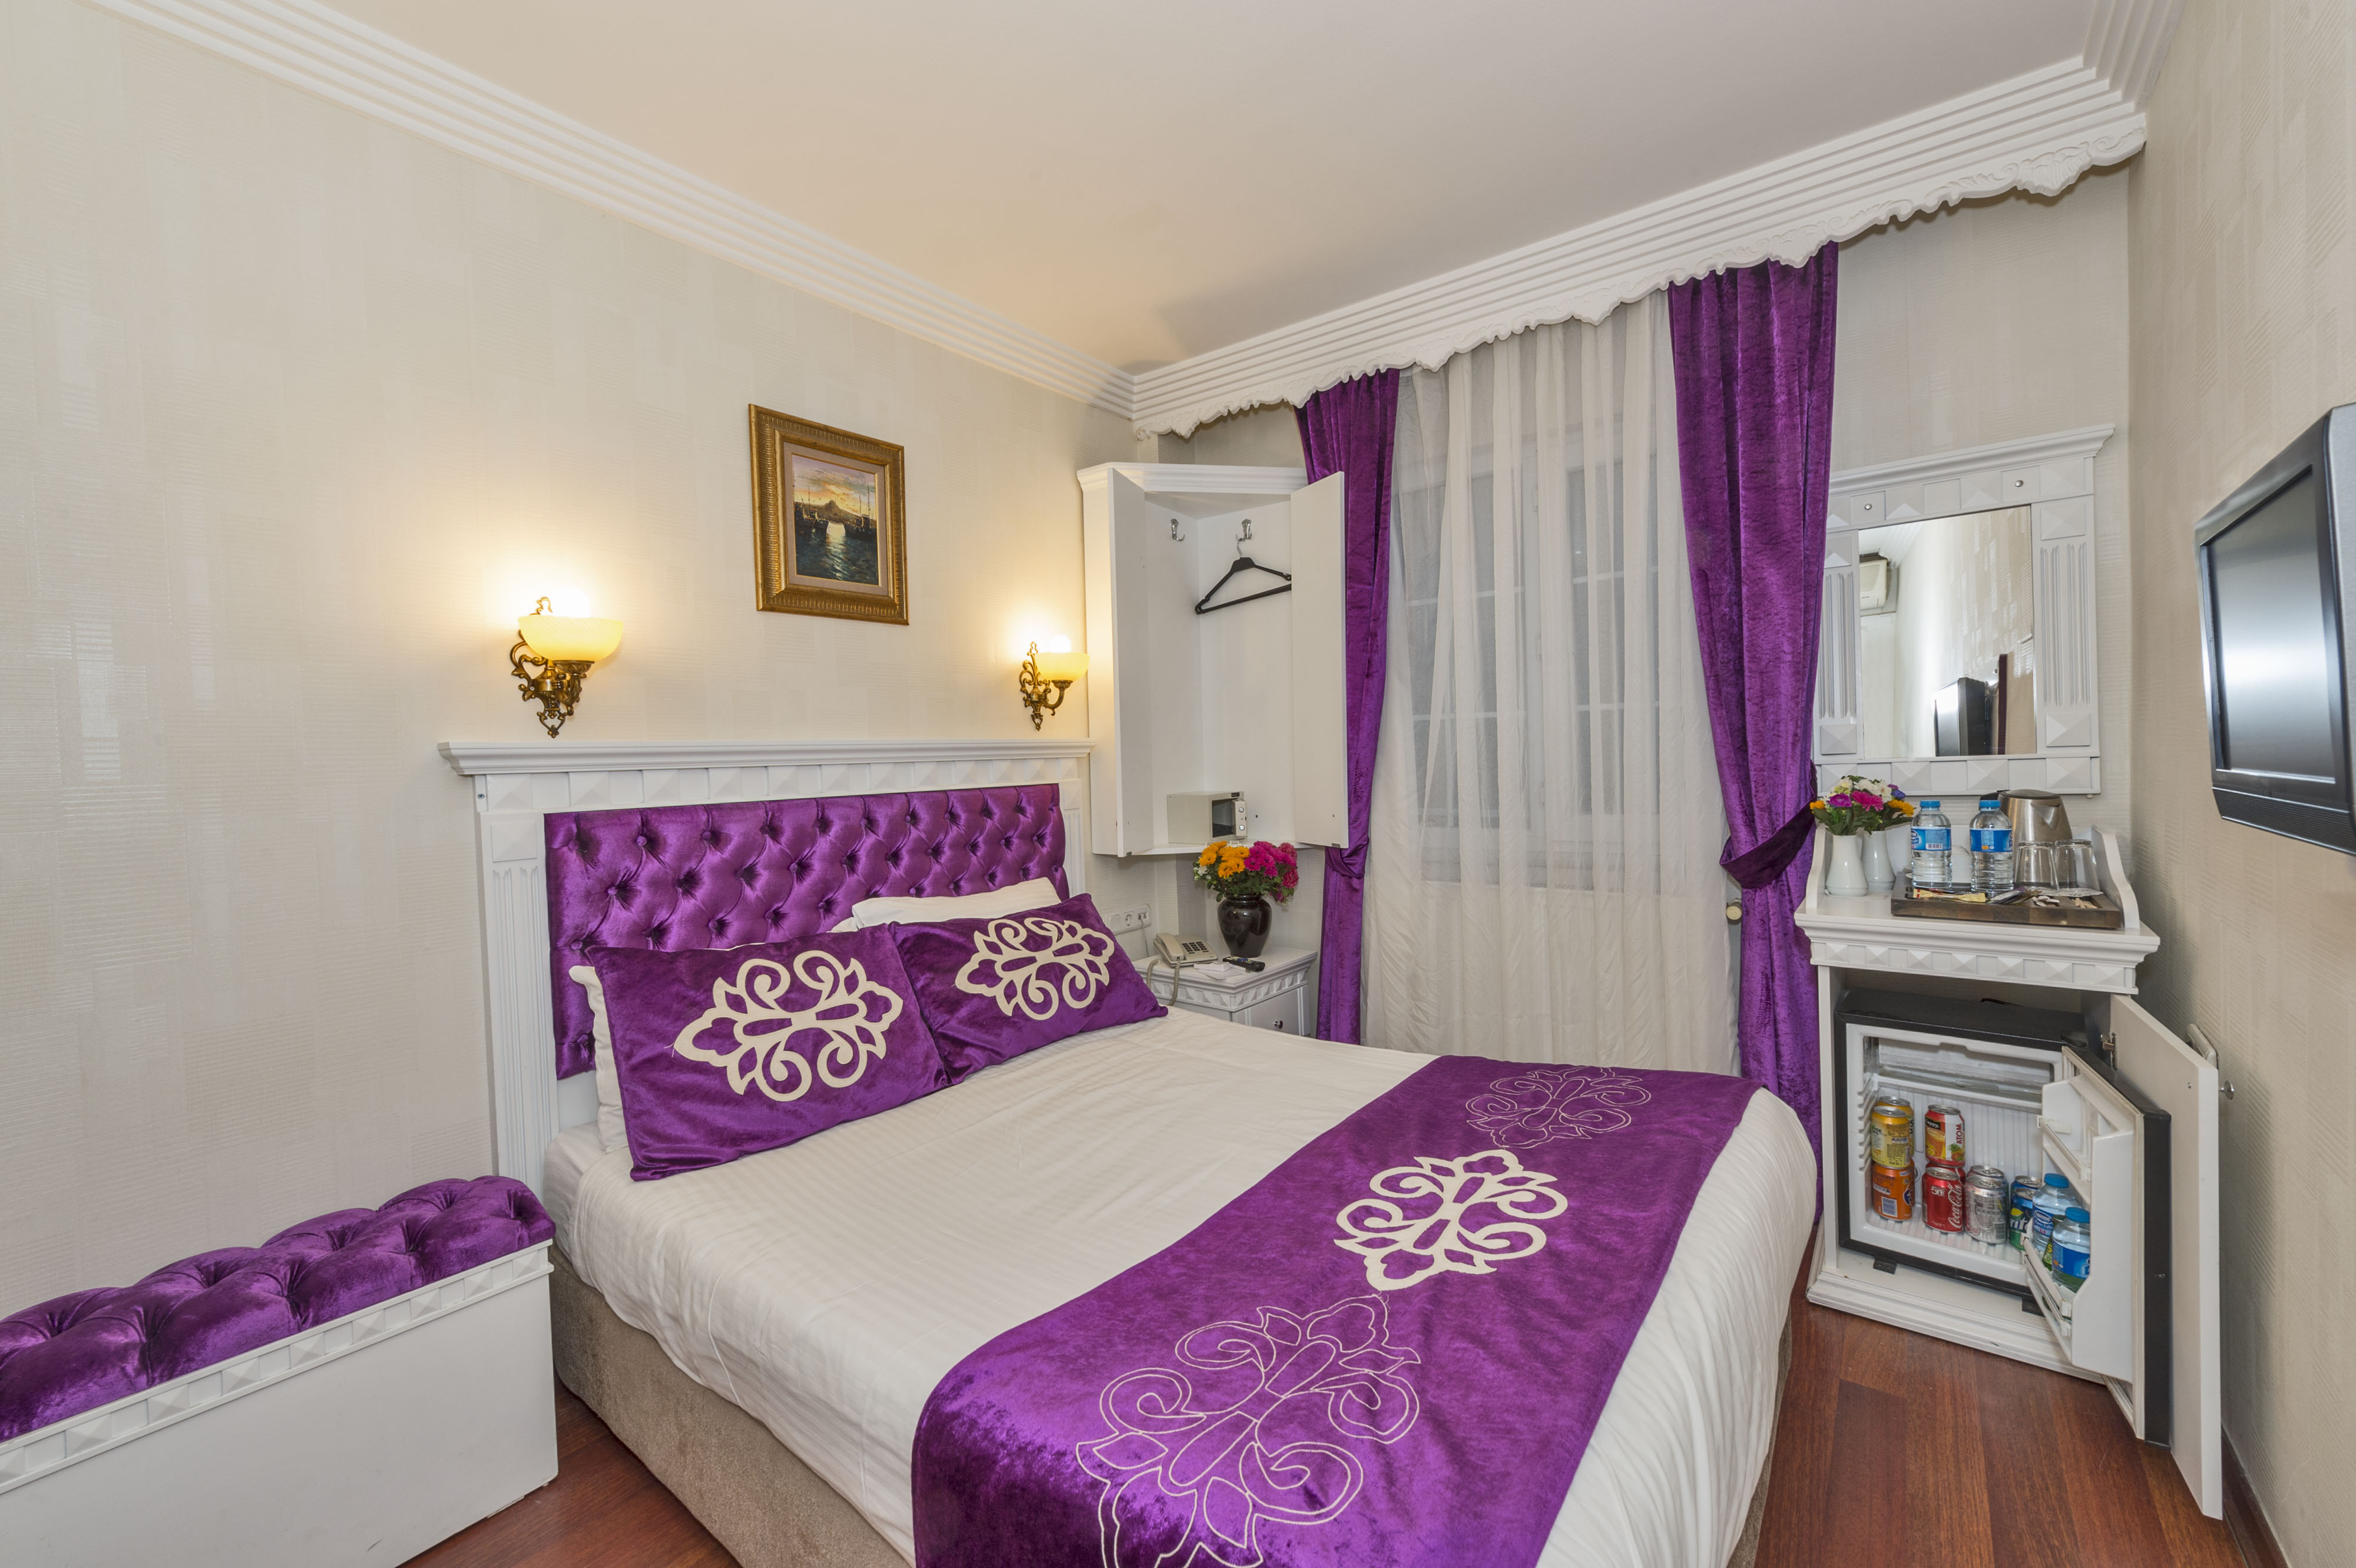 İSTANBUL HOLİDAY HOTEL